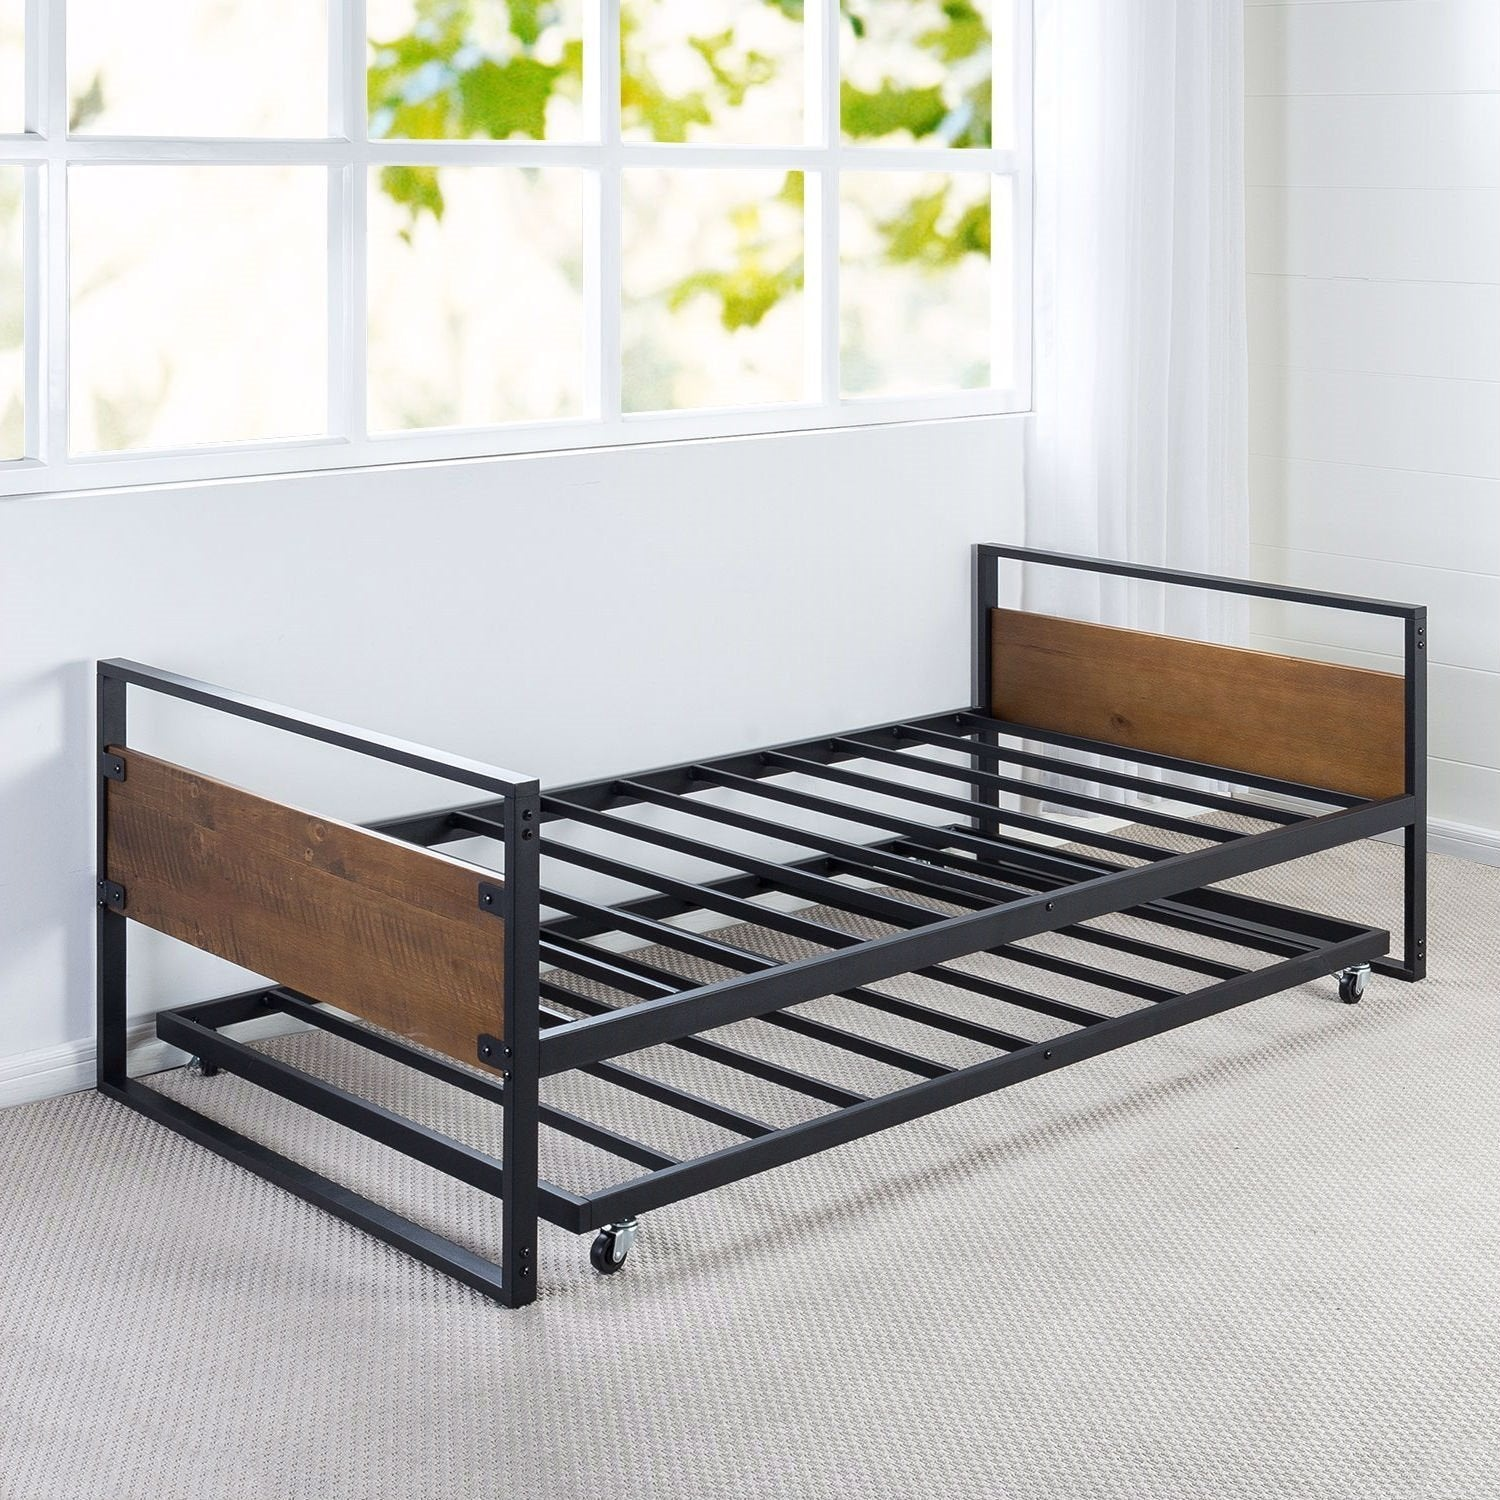 Twin size Metal Wood Daybed Frame with Roll Out Trundle Bed.